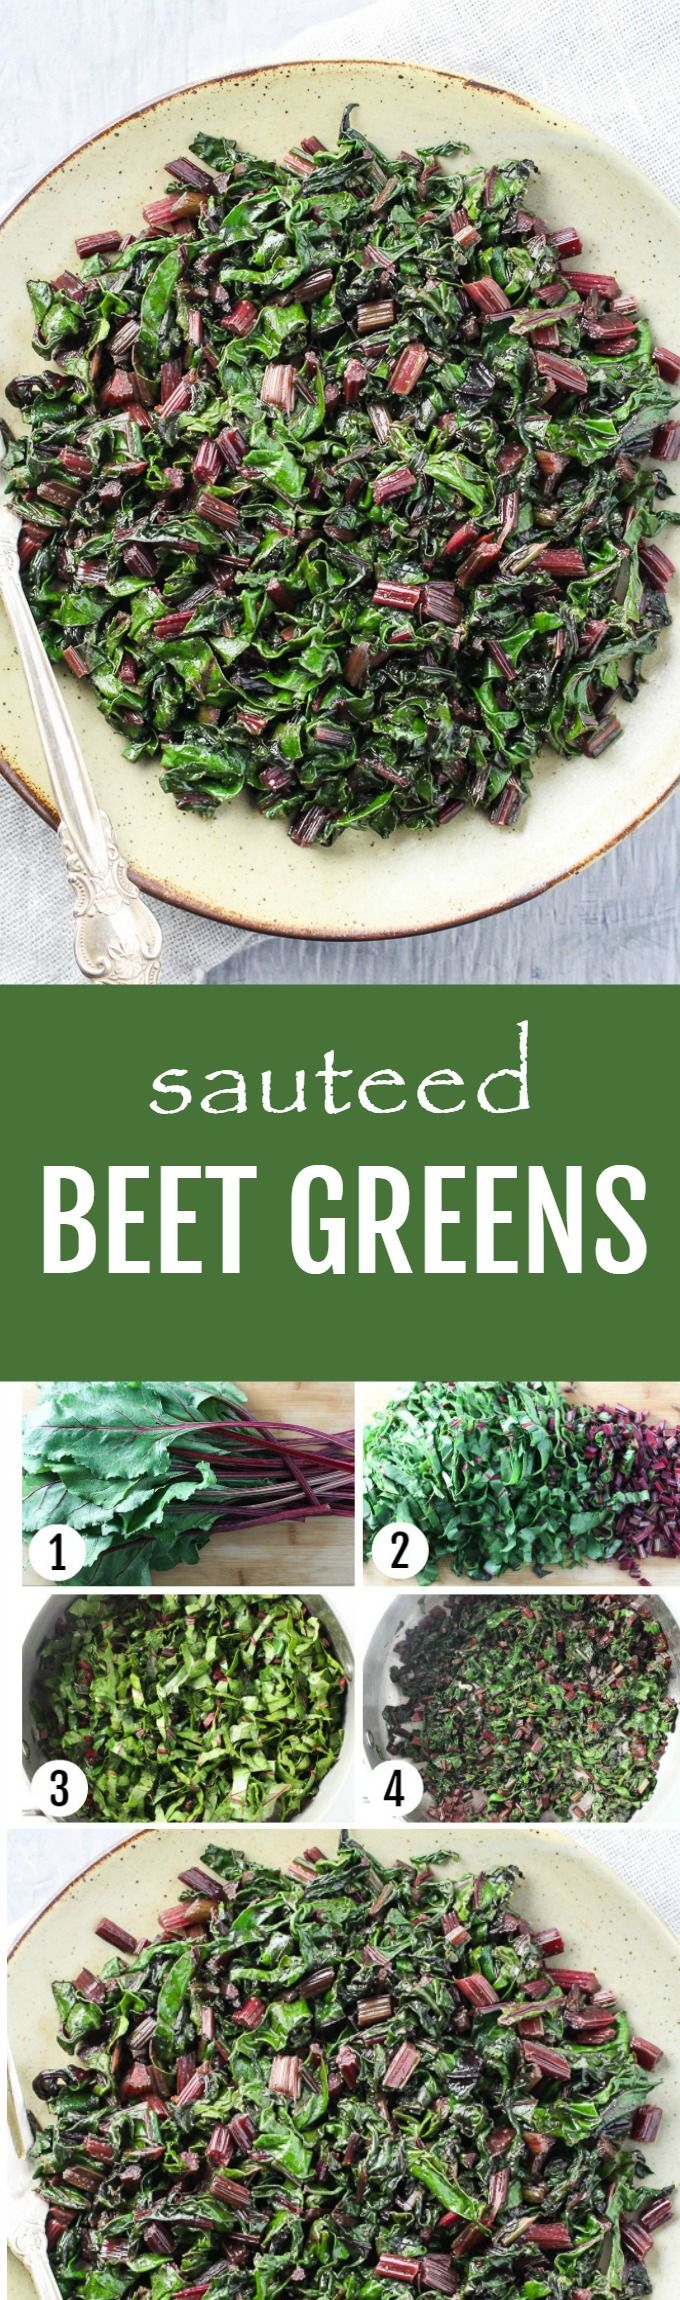 These sauteed beet greens are healthy and delicious. The recipe is very easy to make and includes step-by-step pictures. Ready 10 minutes.